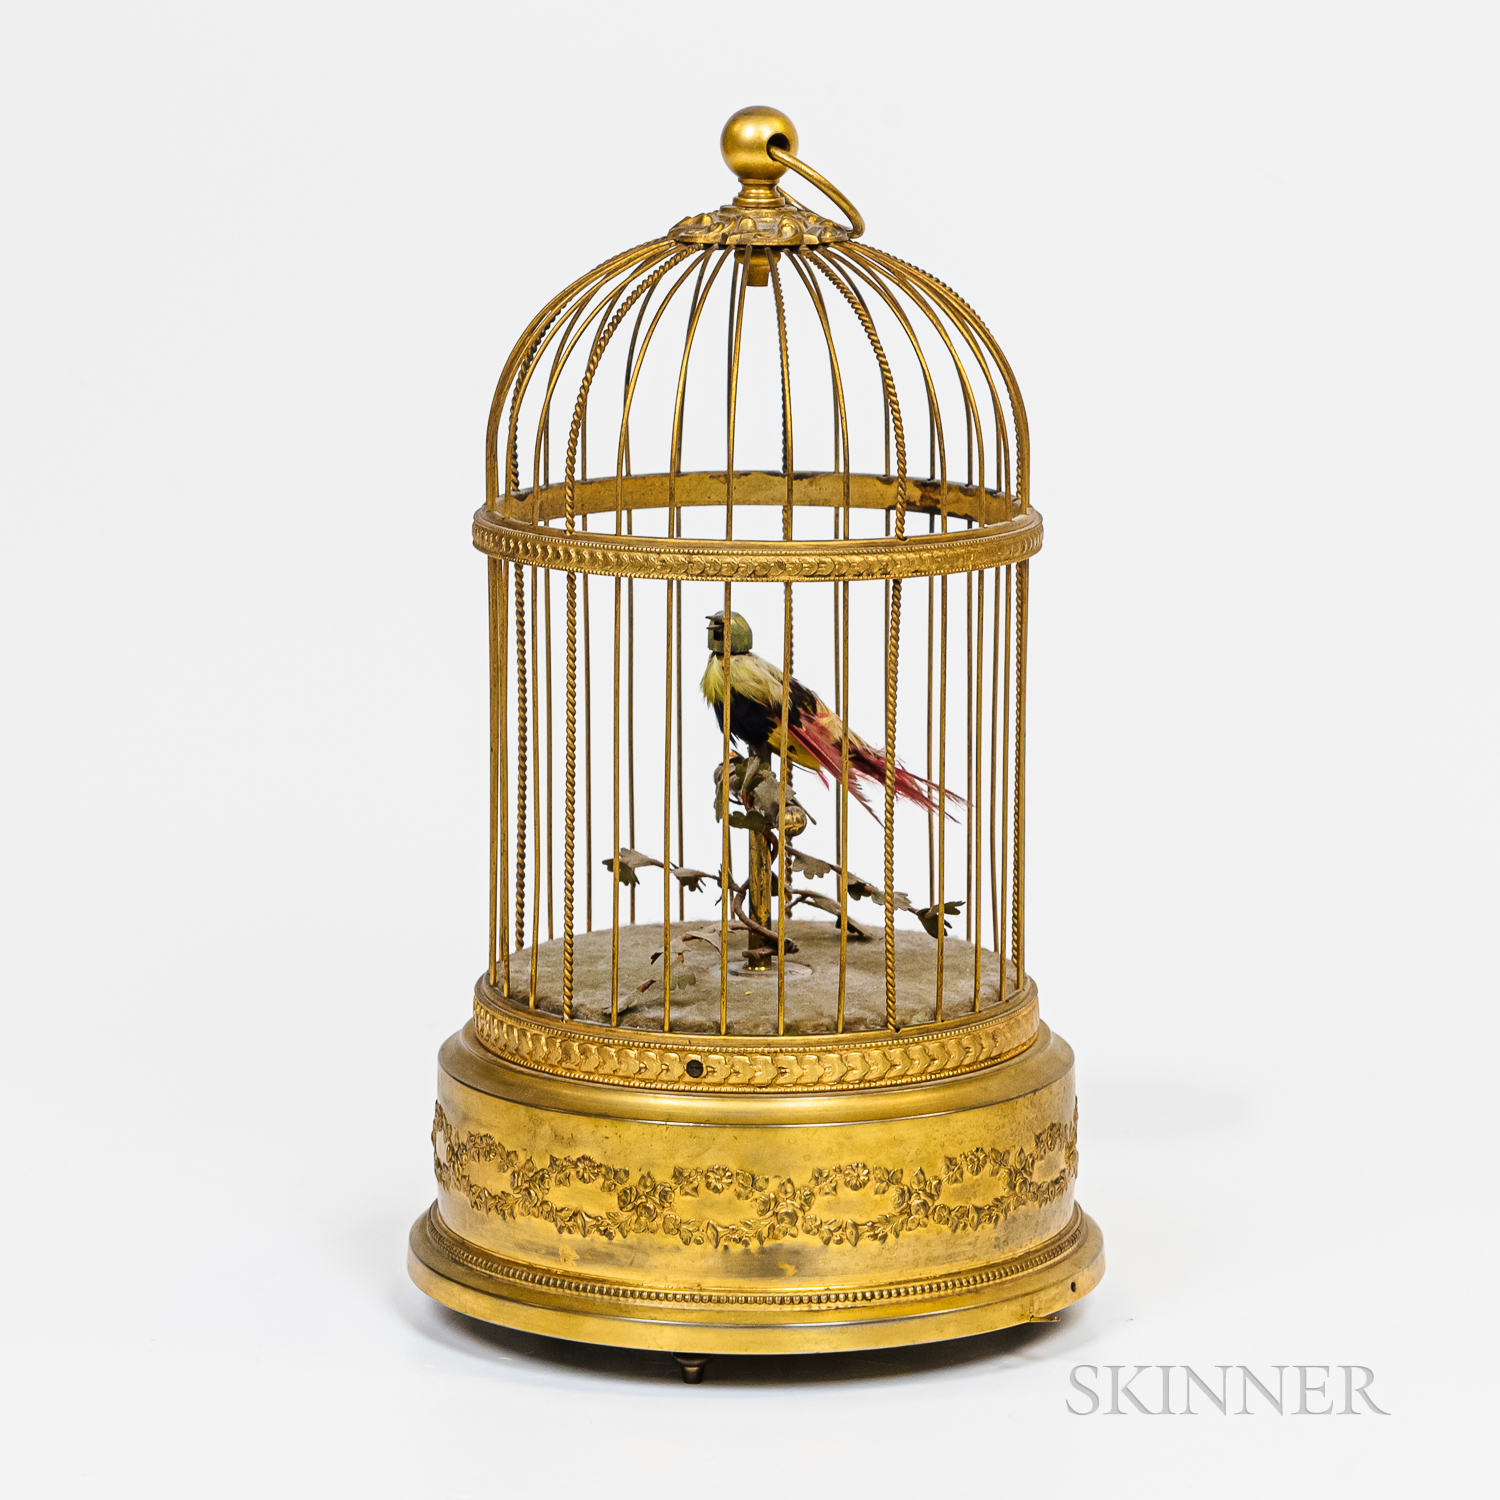 Animatronic Songbird in a Brass Cage